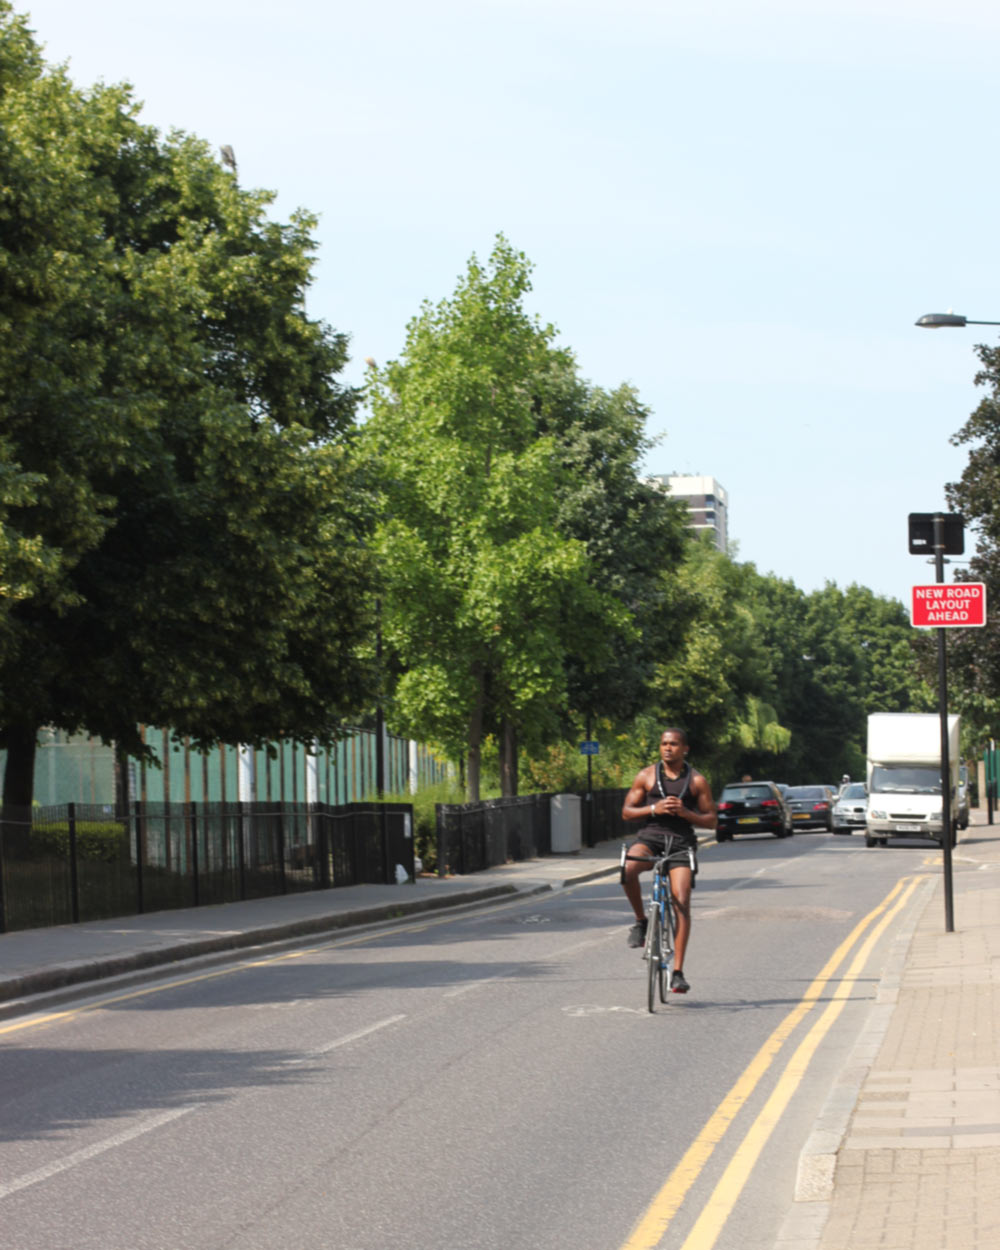 Riding a bike with no hands in London, Summer 2013